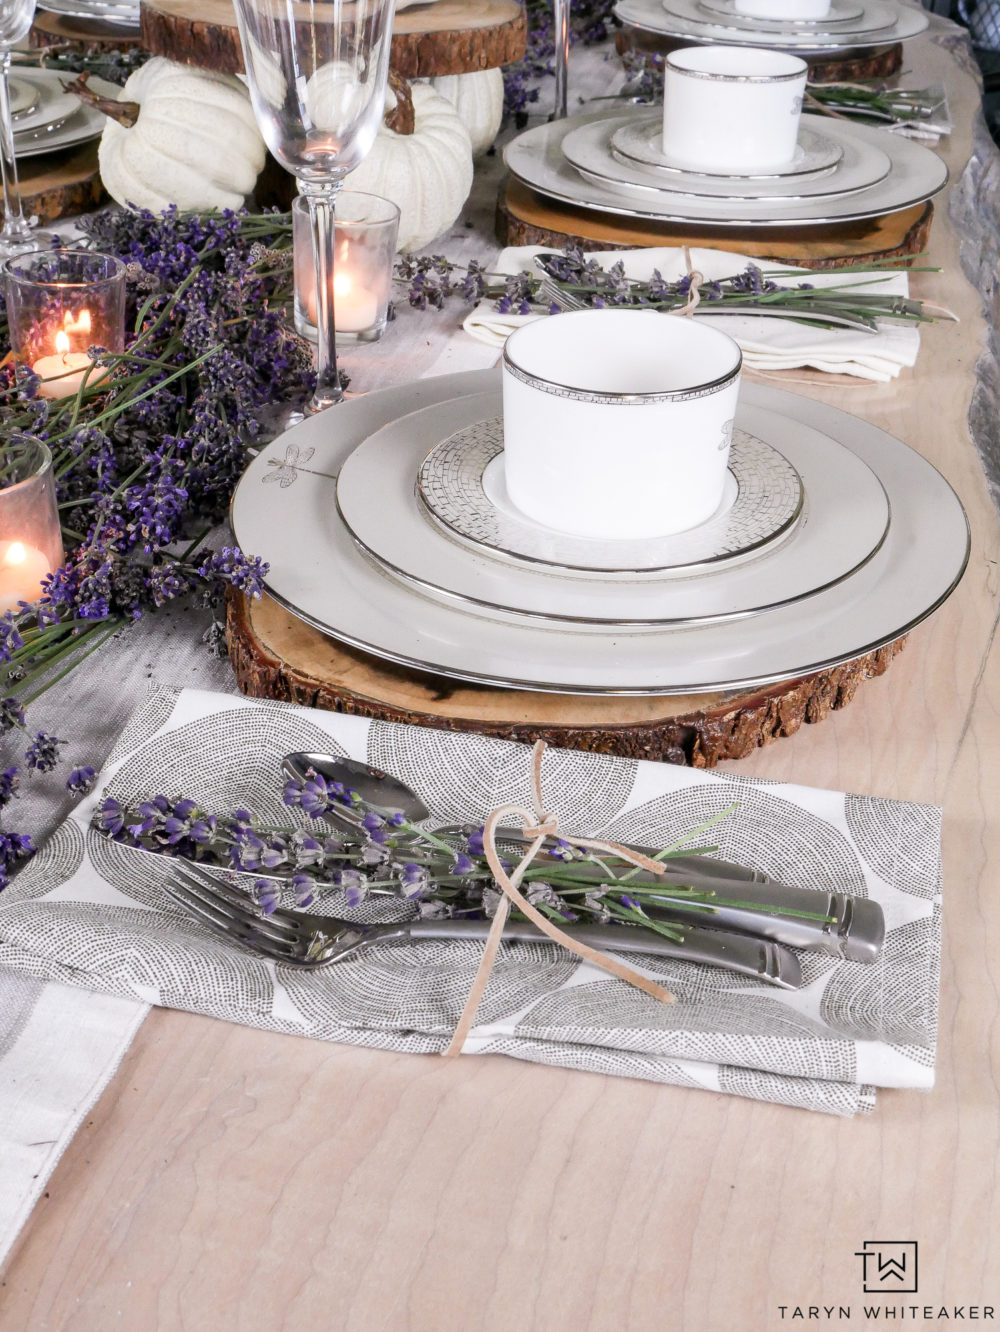 Love pairing this classic fine china with rustic elements and fresh lavender.